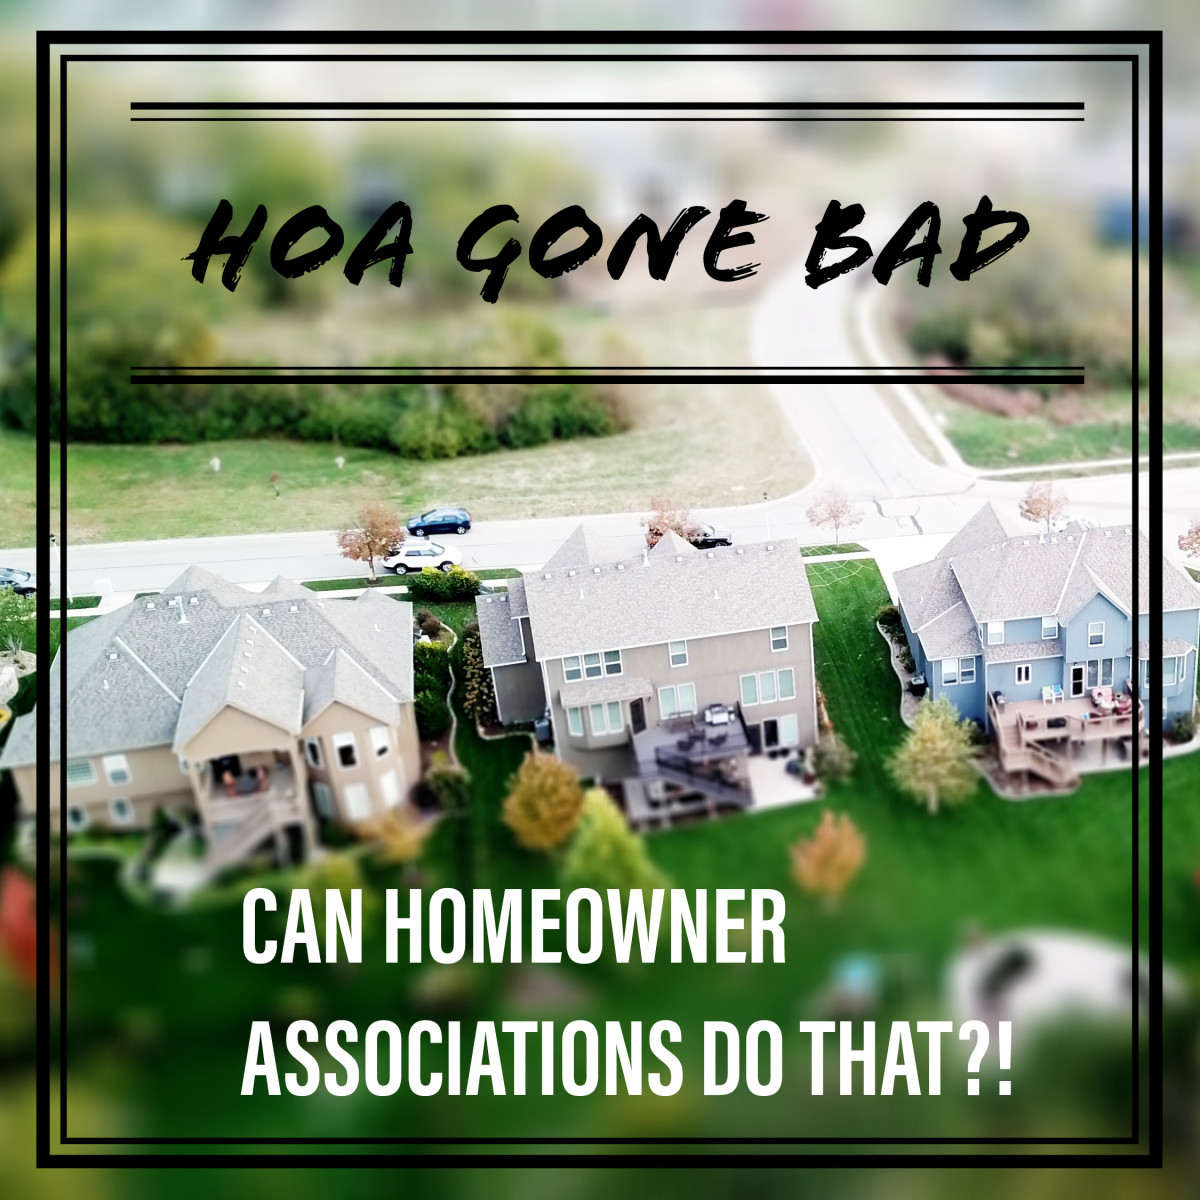 HOA Gone Bad: Can Homeowner Associations Do That?!